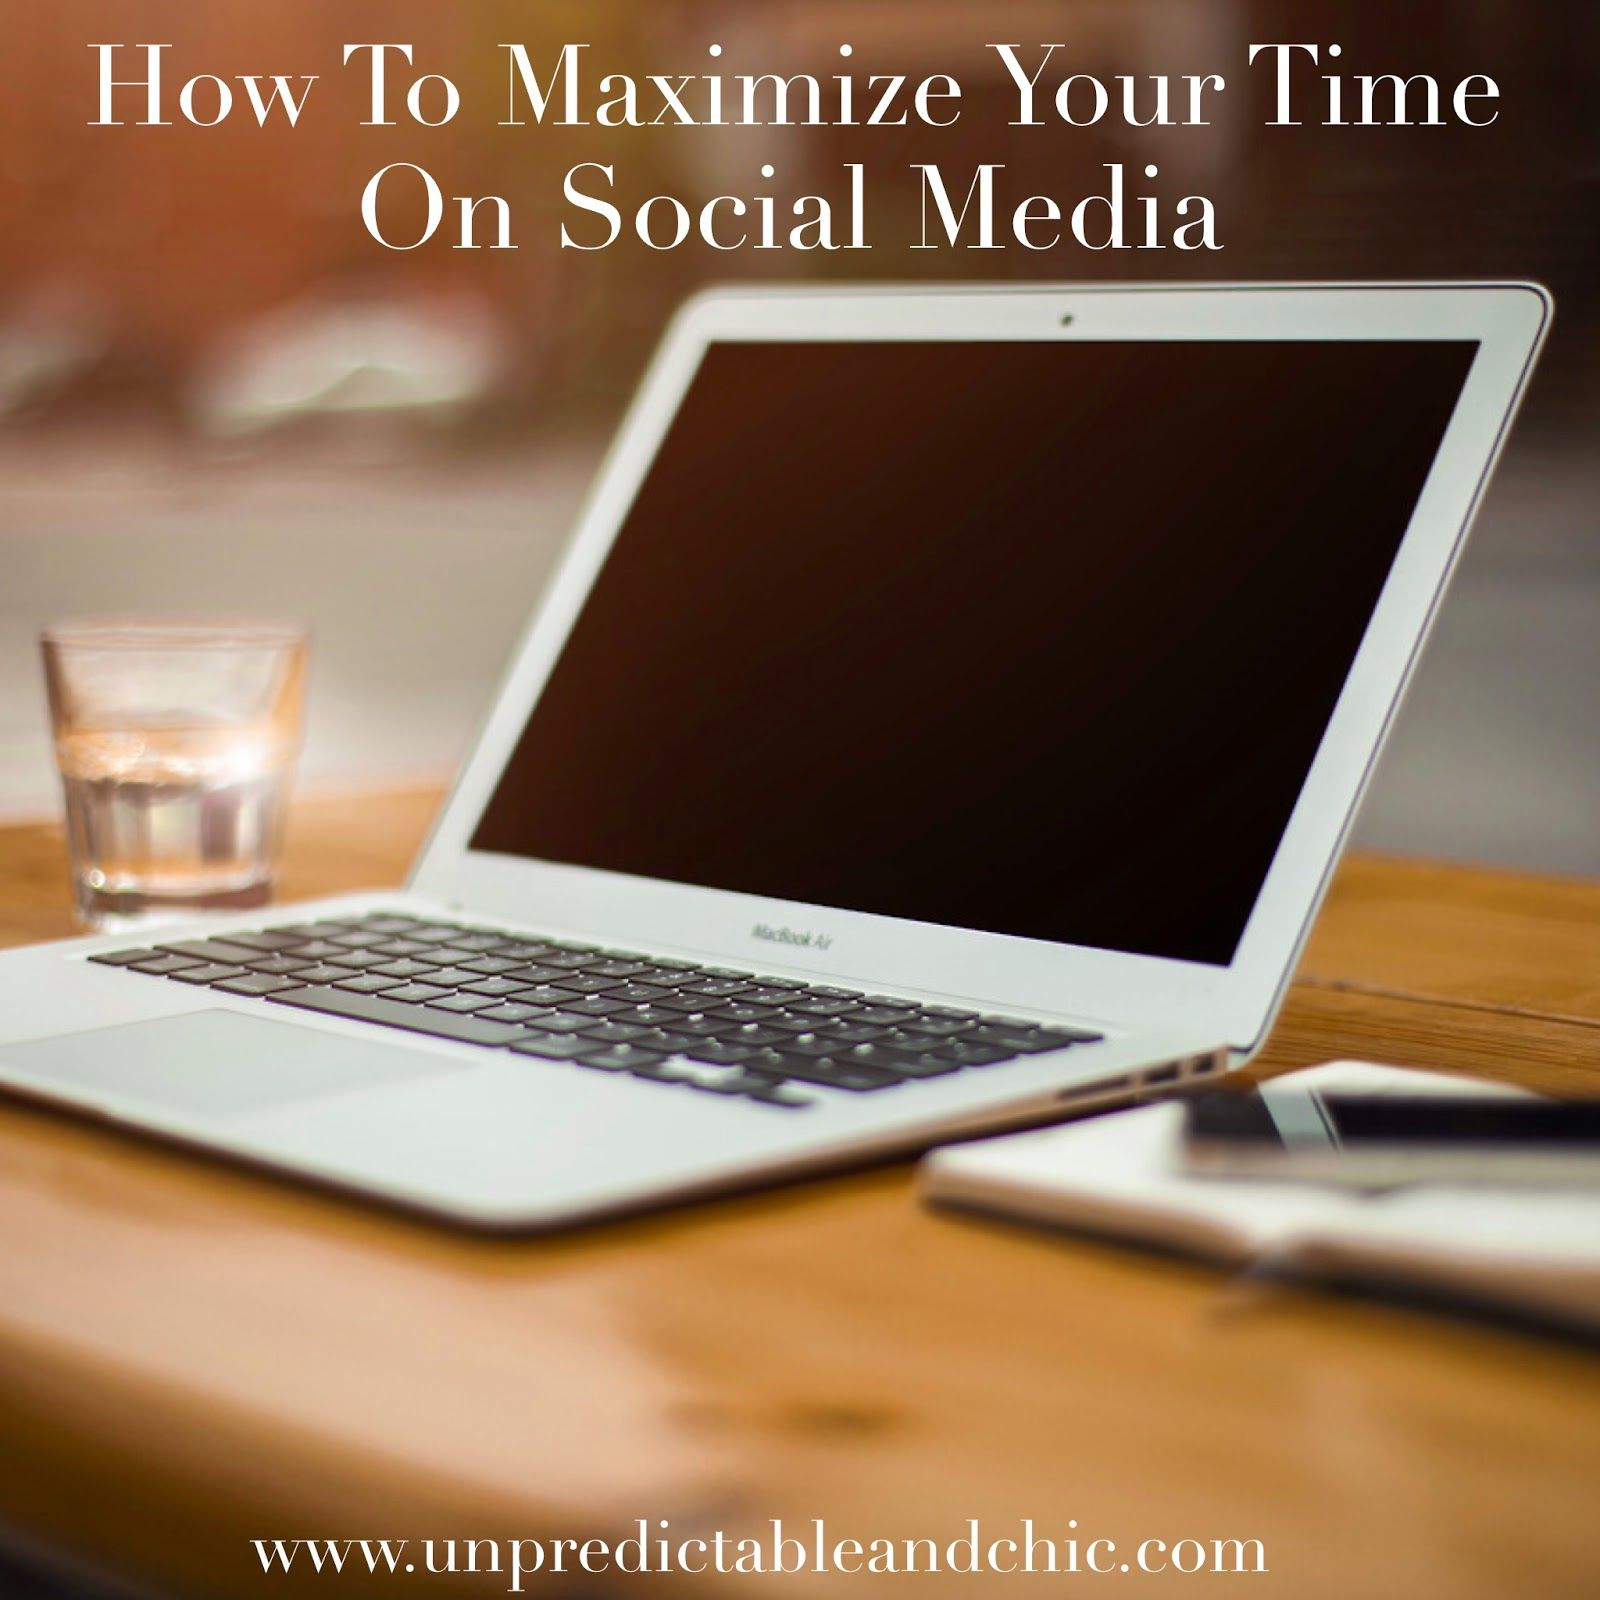 How To Maximize Your Time on Social Media Laptop